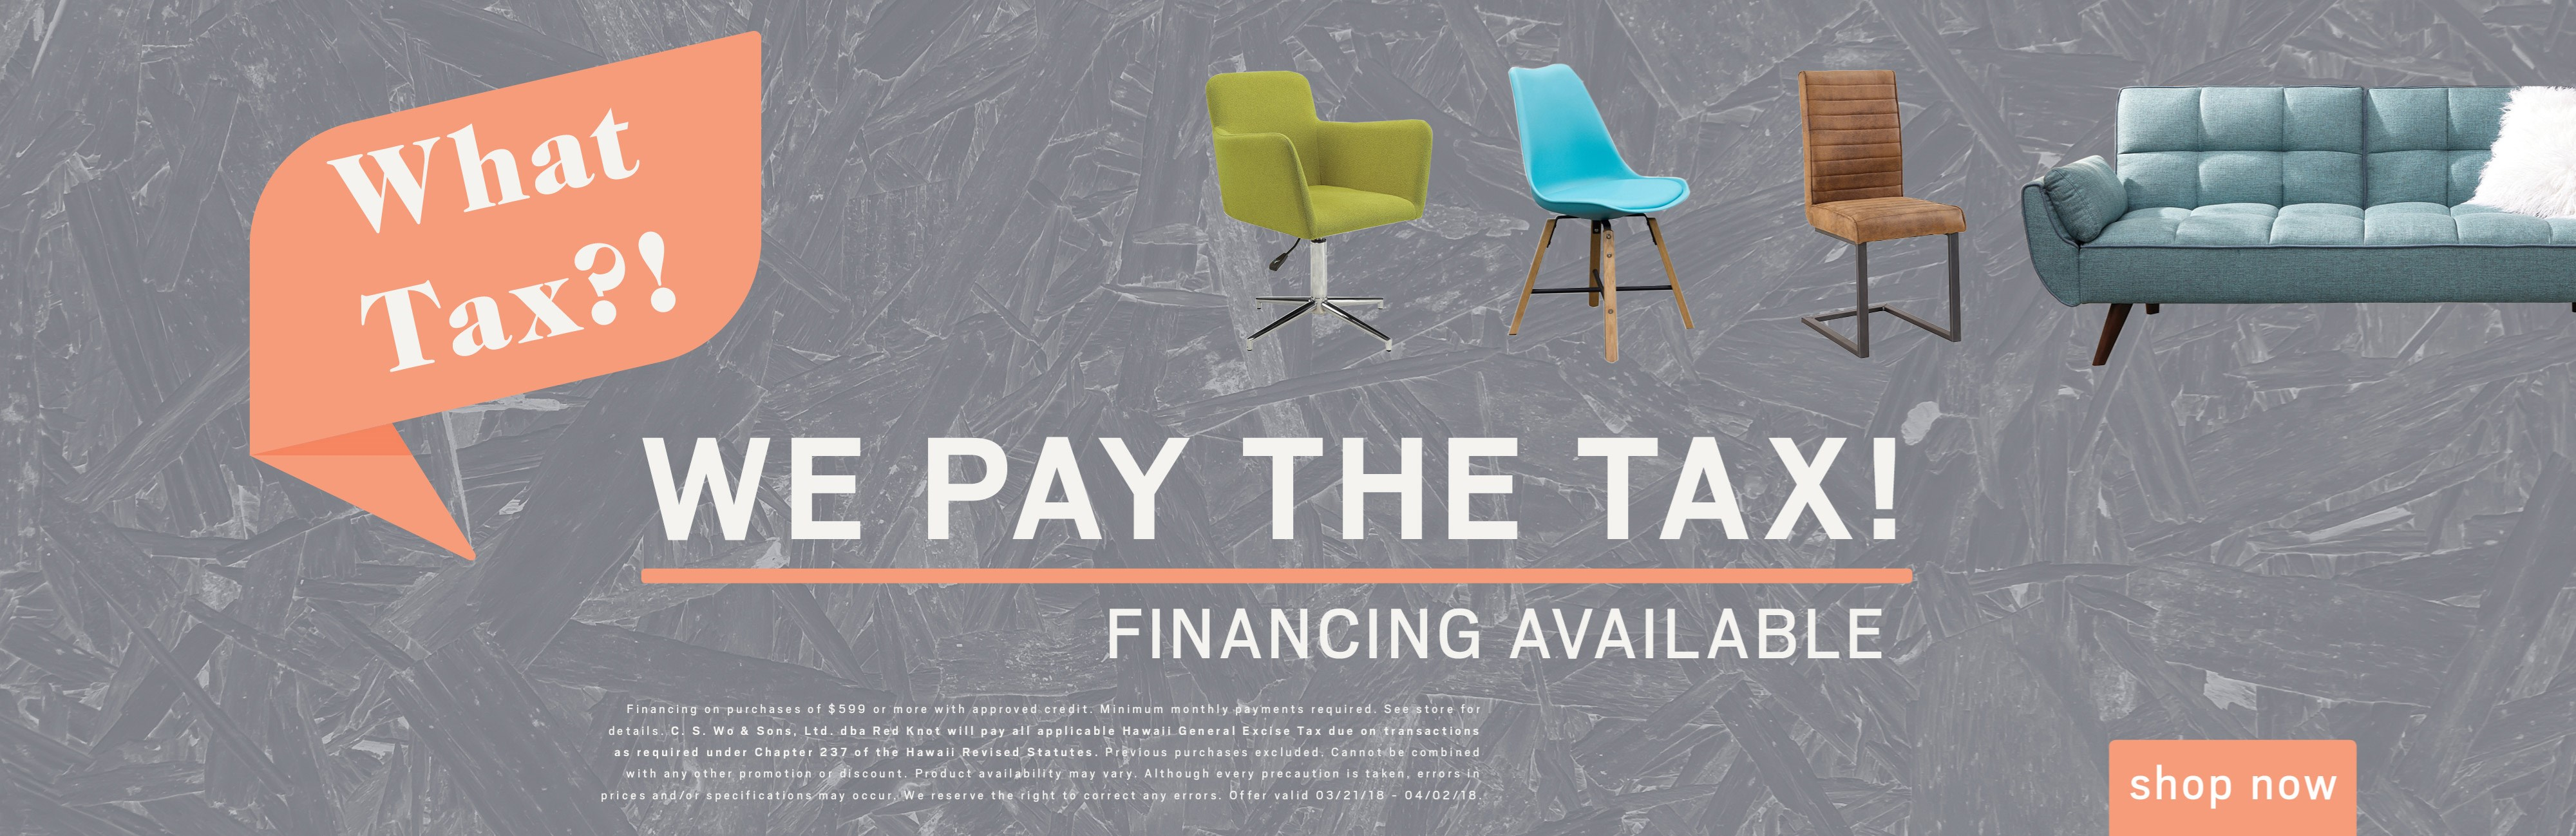 We pay the Tax! Financing available. See store for details.